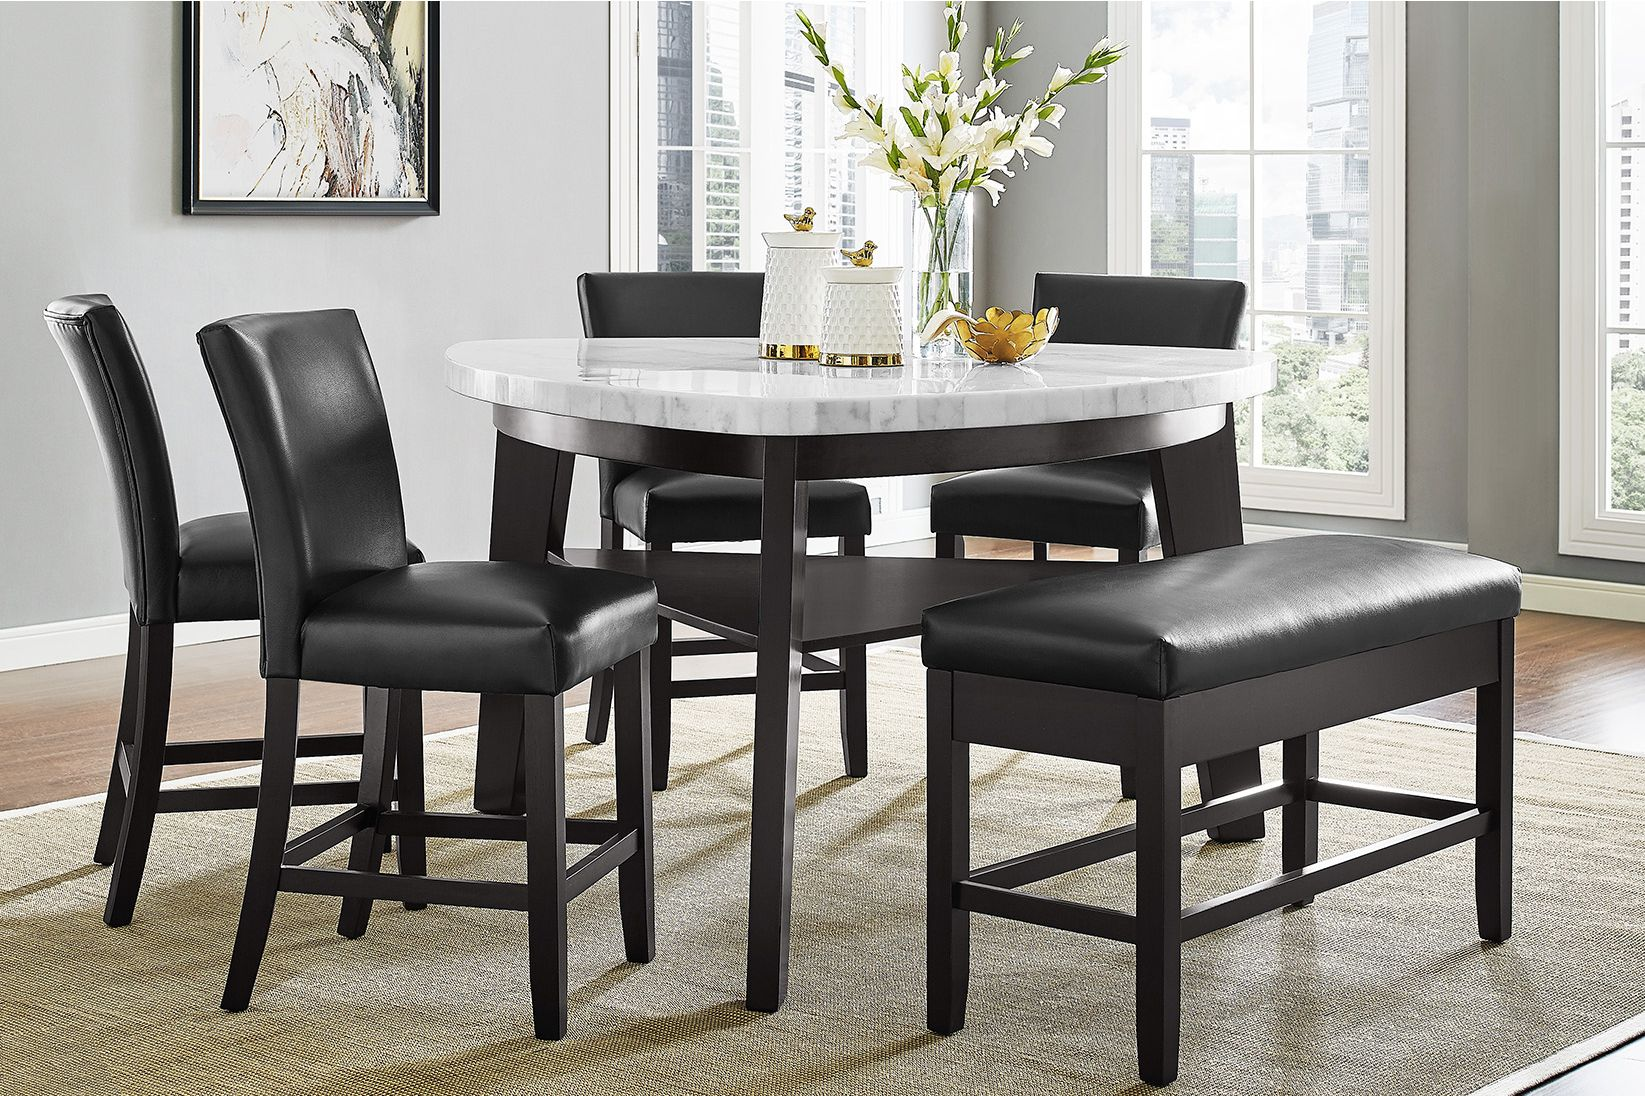 Carrara Marble Counter Height Dining Table 4 Counter Chairs Storage Bench